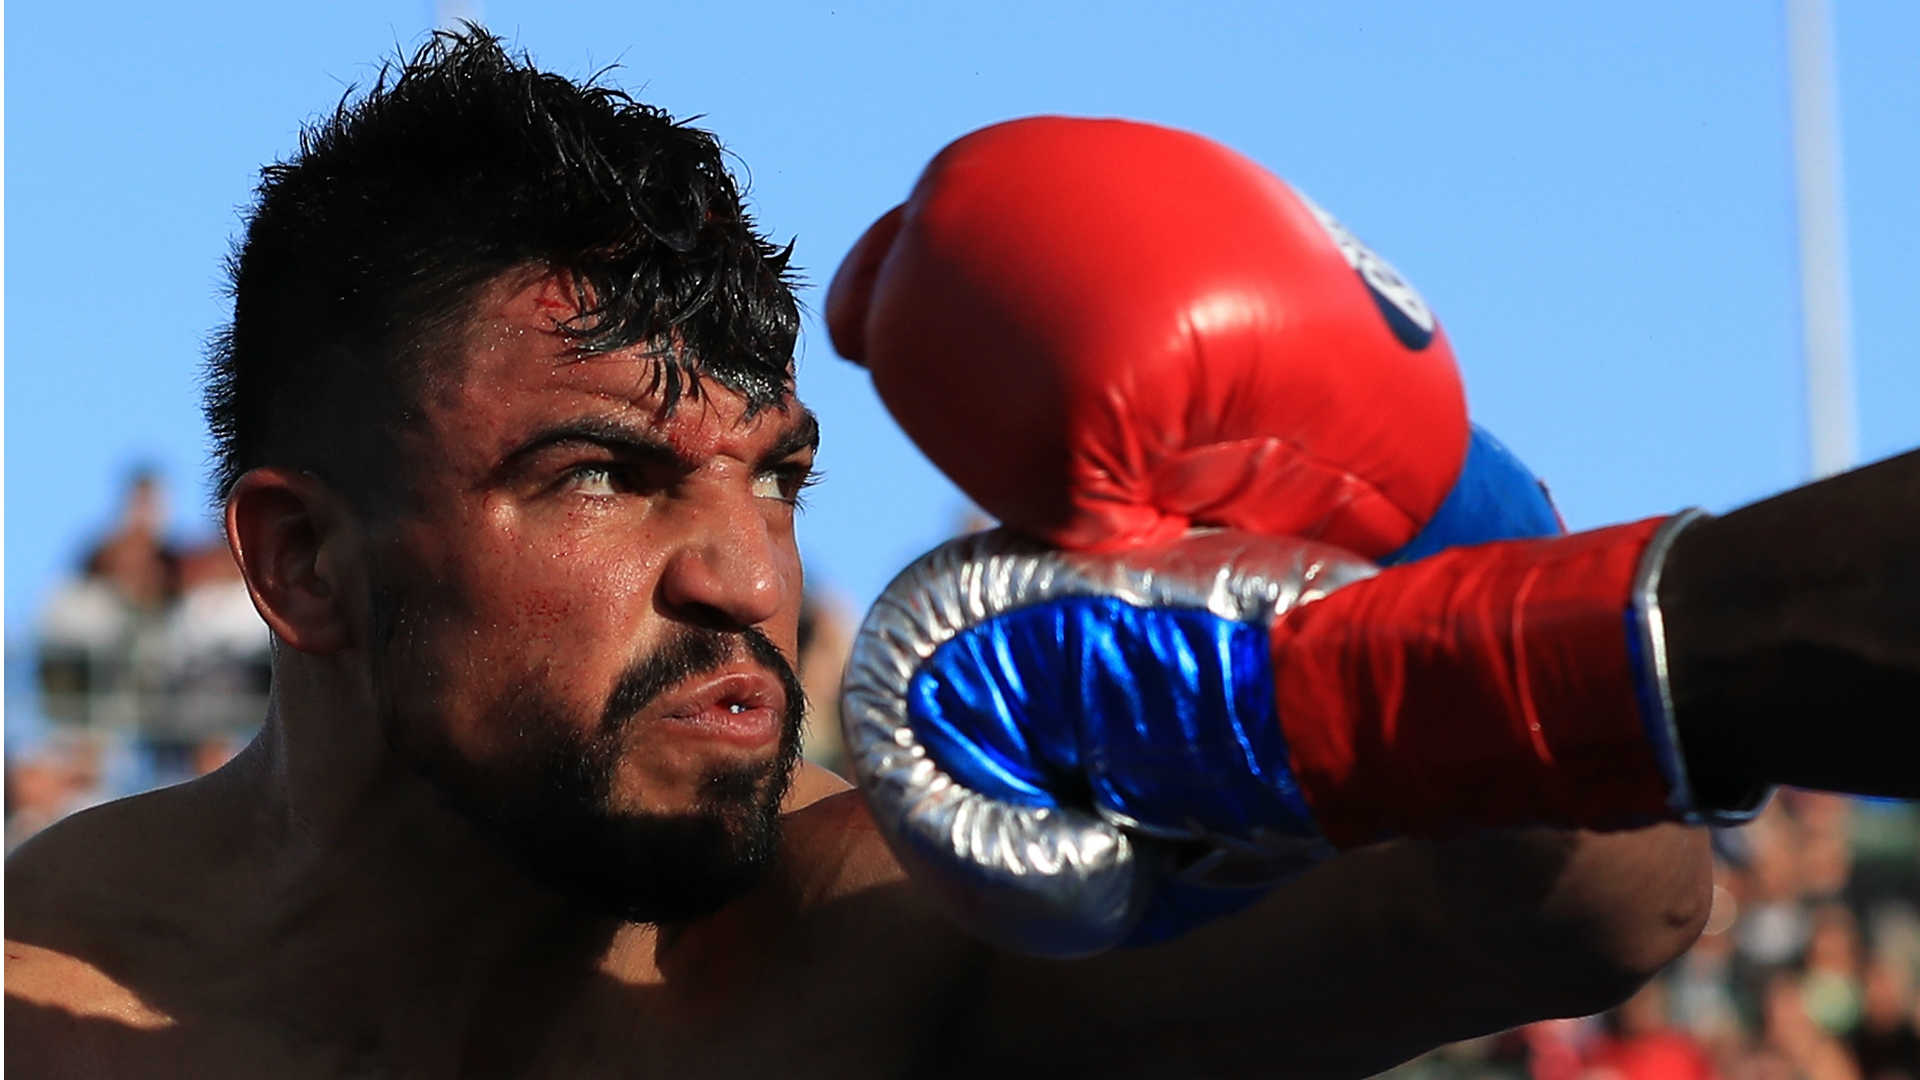 Boxer Victor Ortiz charged with felony sexual assault days before scheduled bout